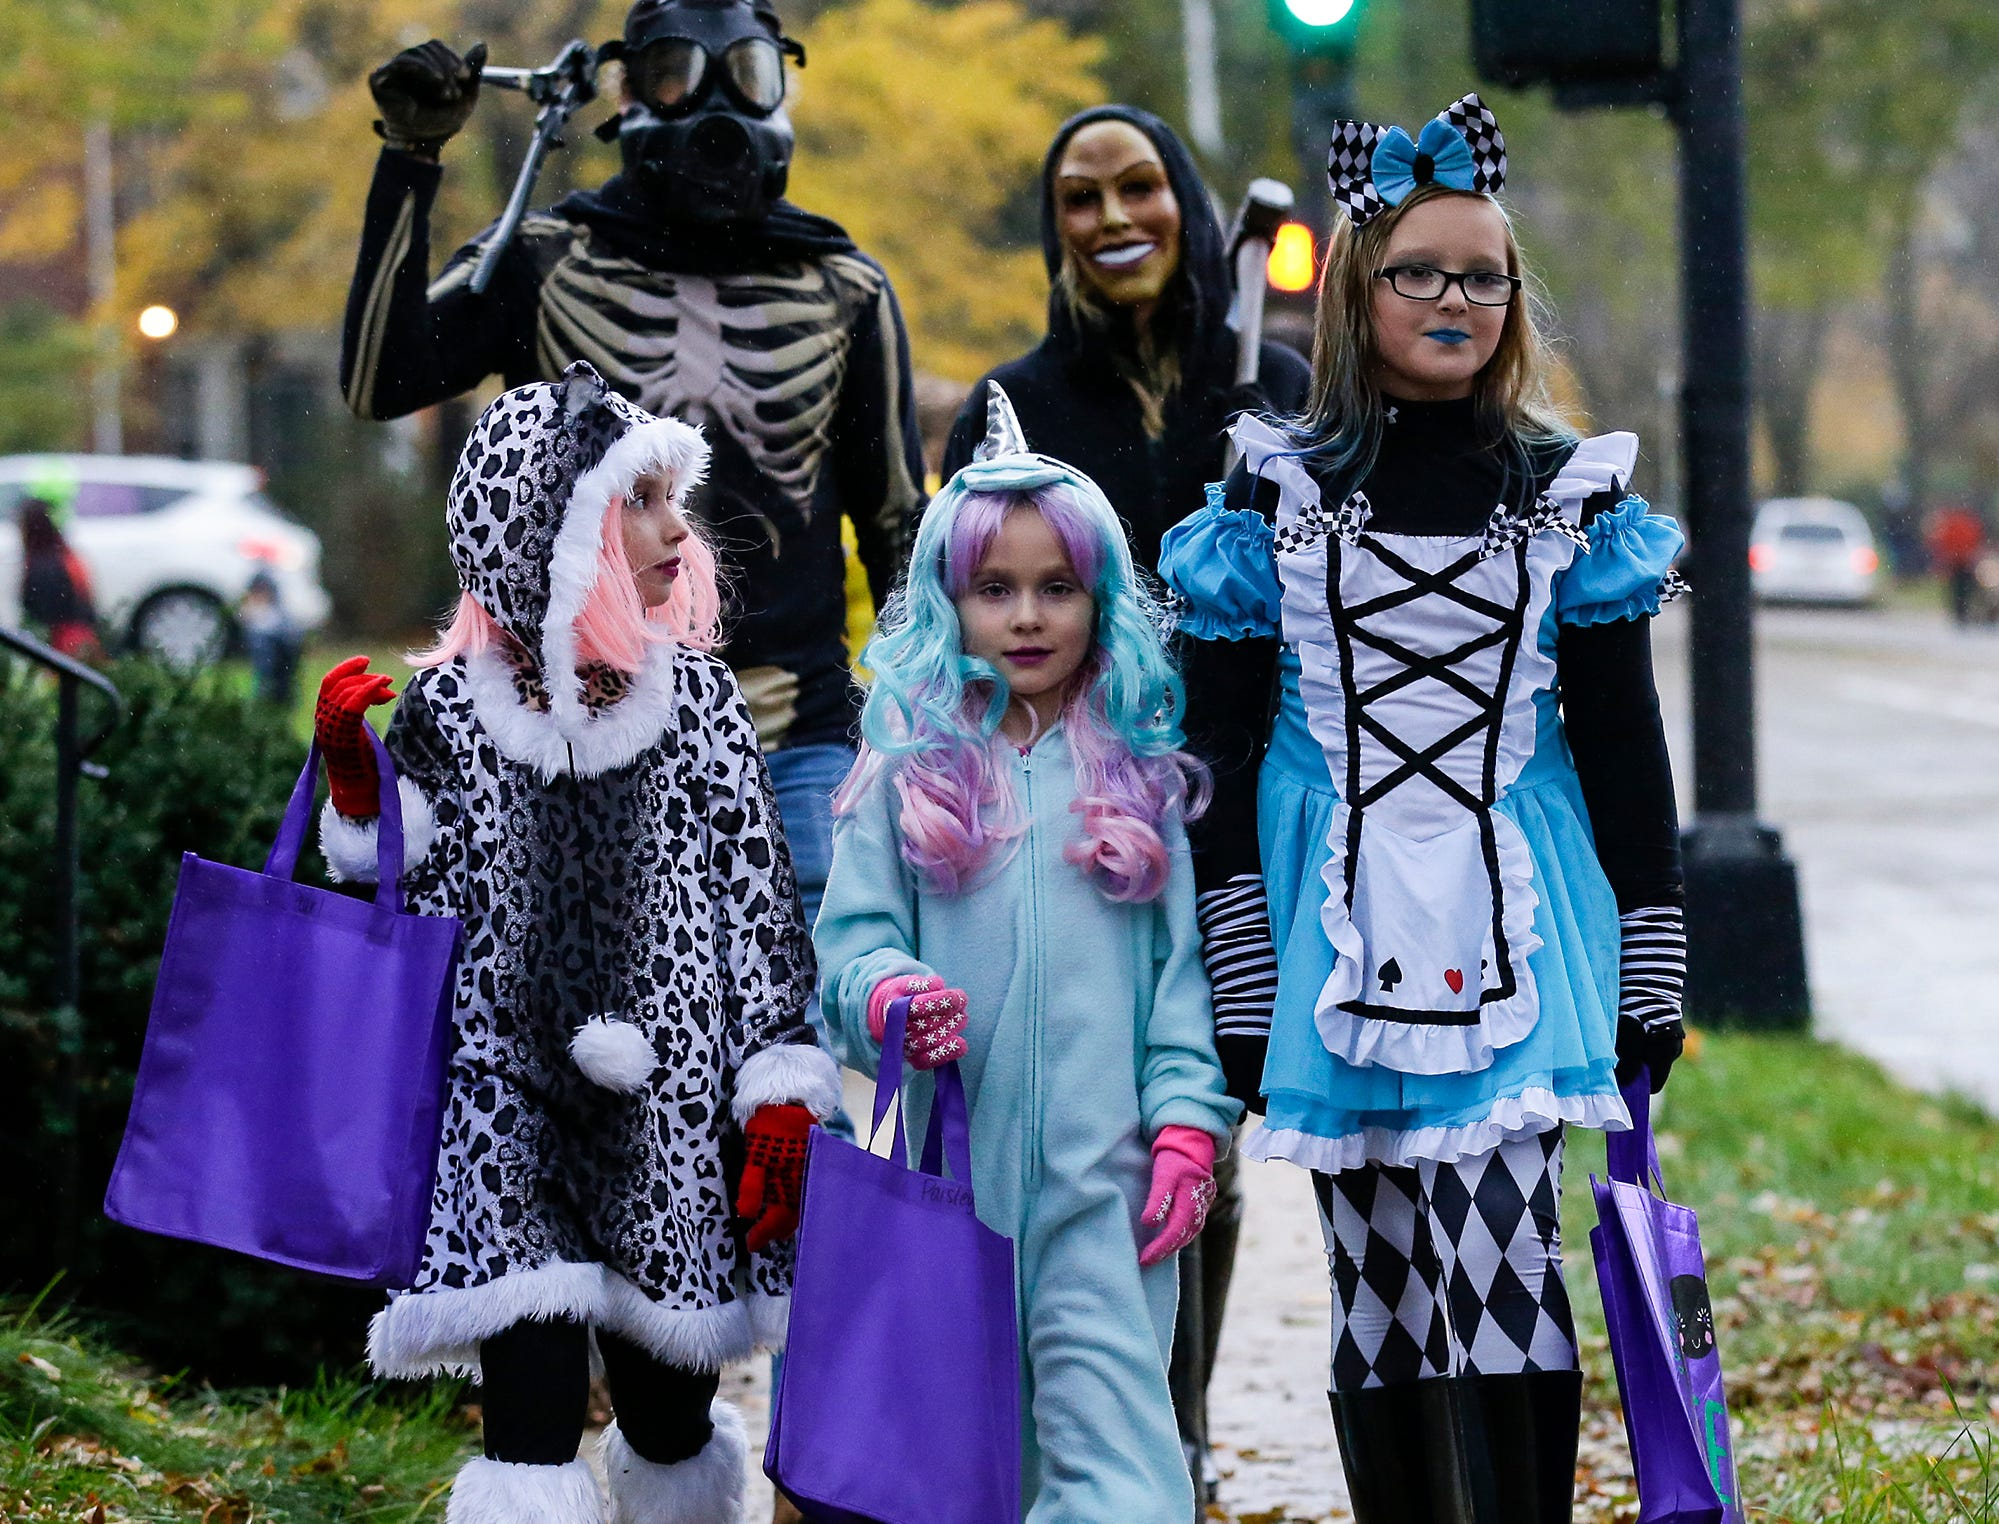 Pearl and Paisley Diorio and Nova Loppnow (front row) and Drew Diorio and Rose Barber of Fond du Lac were out trick or treating Sunday, October 28, 2018 in Fond du Lac, Wisconsin. Doug Raflik/USA TODAY NETWORK-Wisconsin